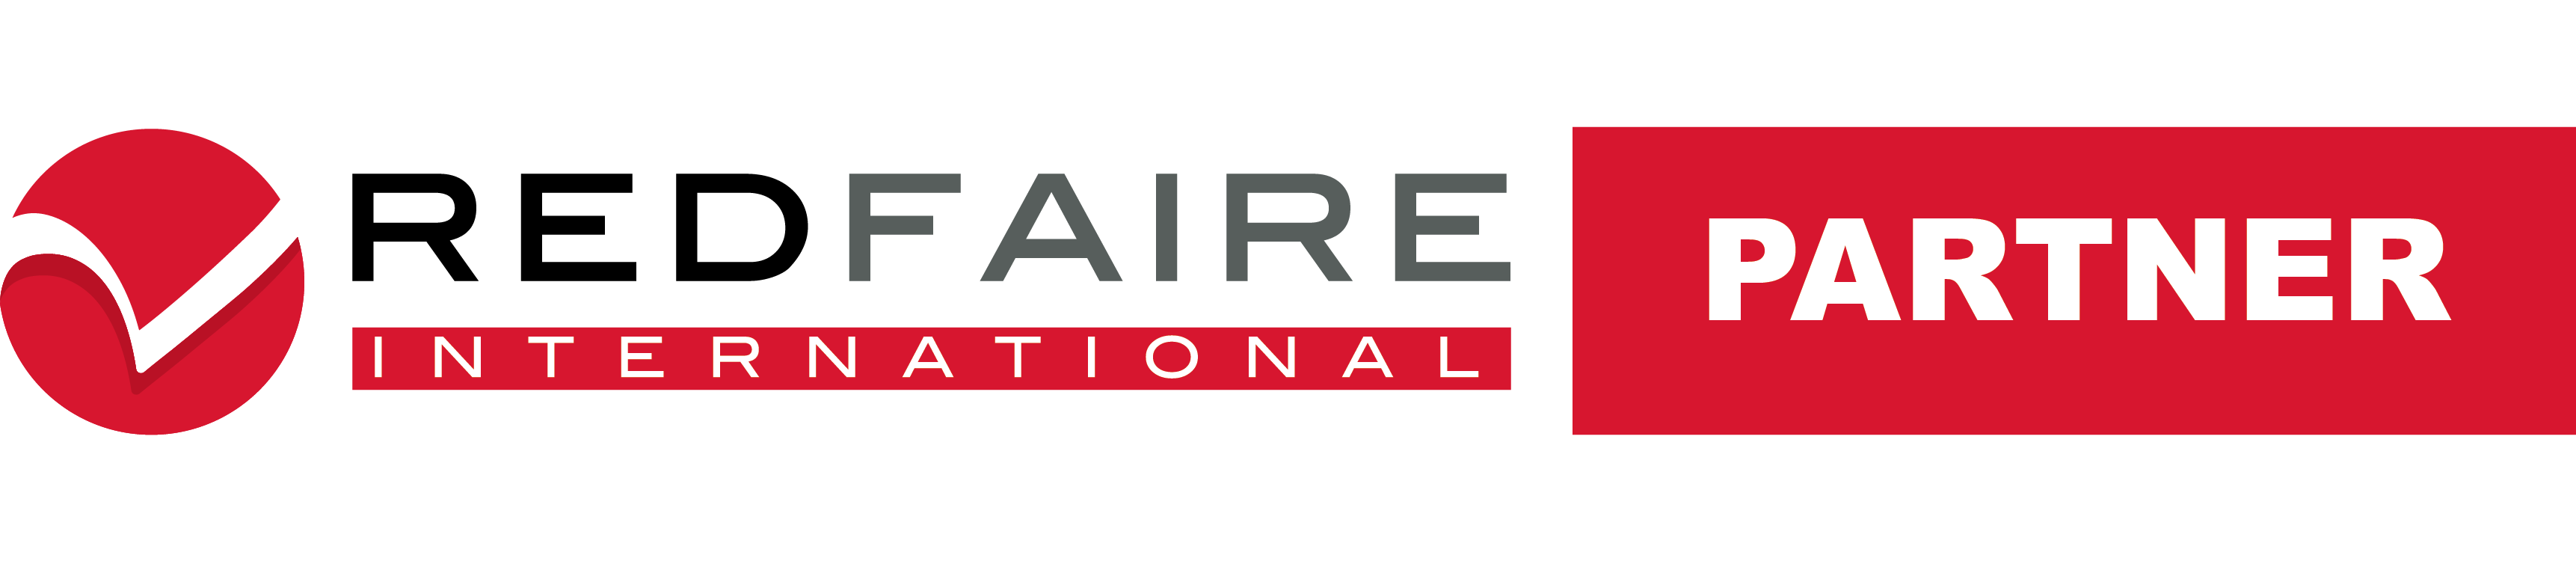 REDFAIRE INTERNATIONAL Partner